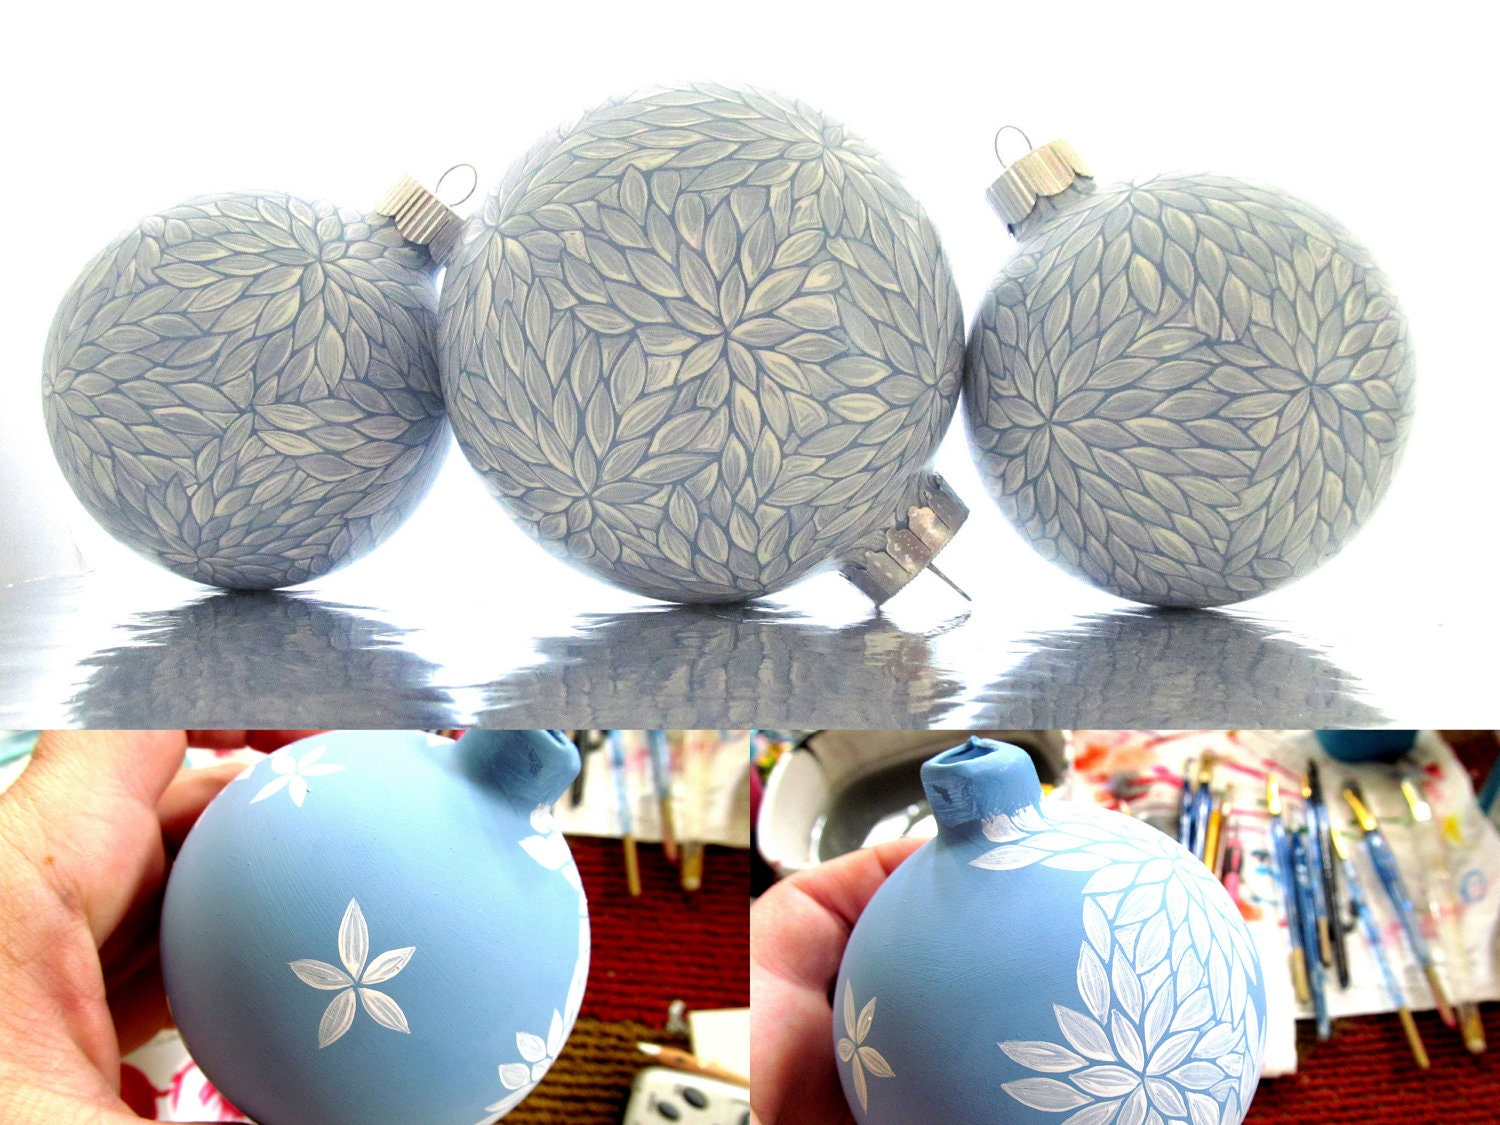 Personalized wedding christmas ornament - Winter Wonderland Set Of 3 Blue And White Painted Glass Ornament Christmas Ornament Wedding Set Can Be Personalized